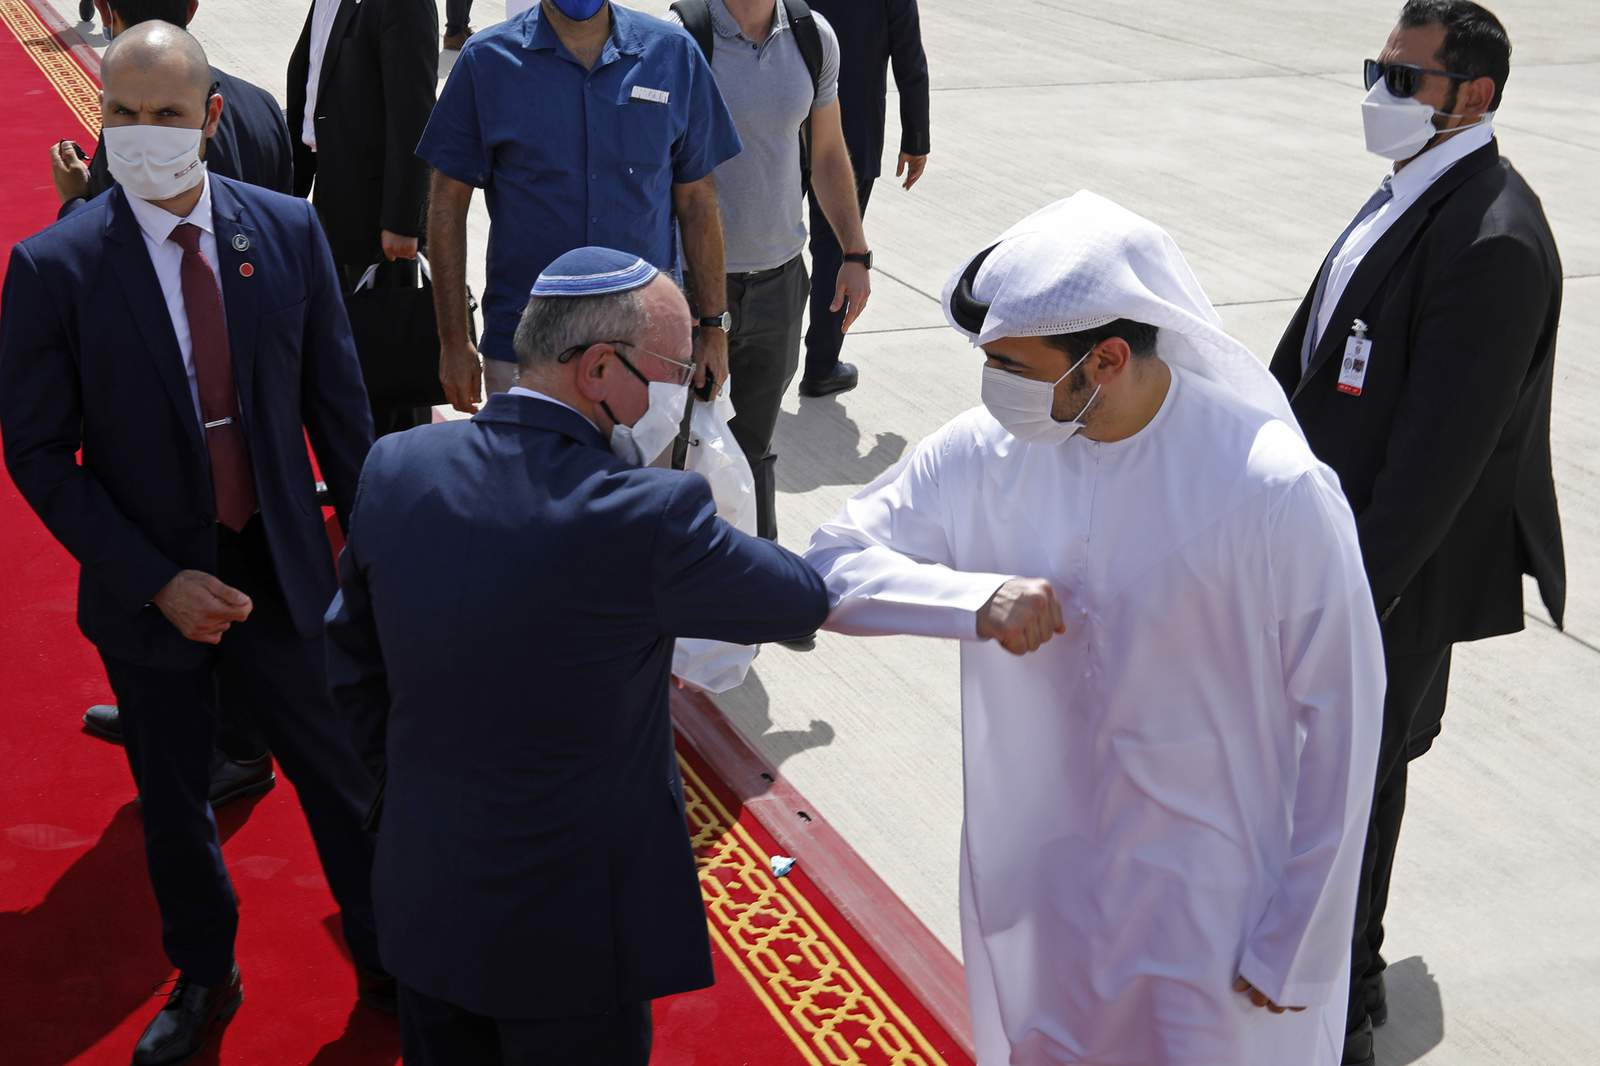 UAE`s warm welcome to Israelis reflects changing region